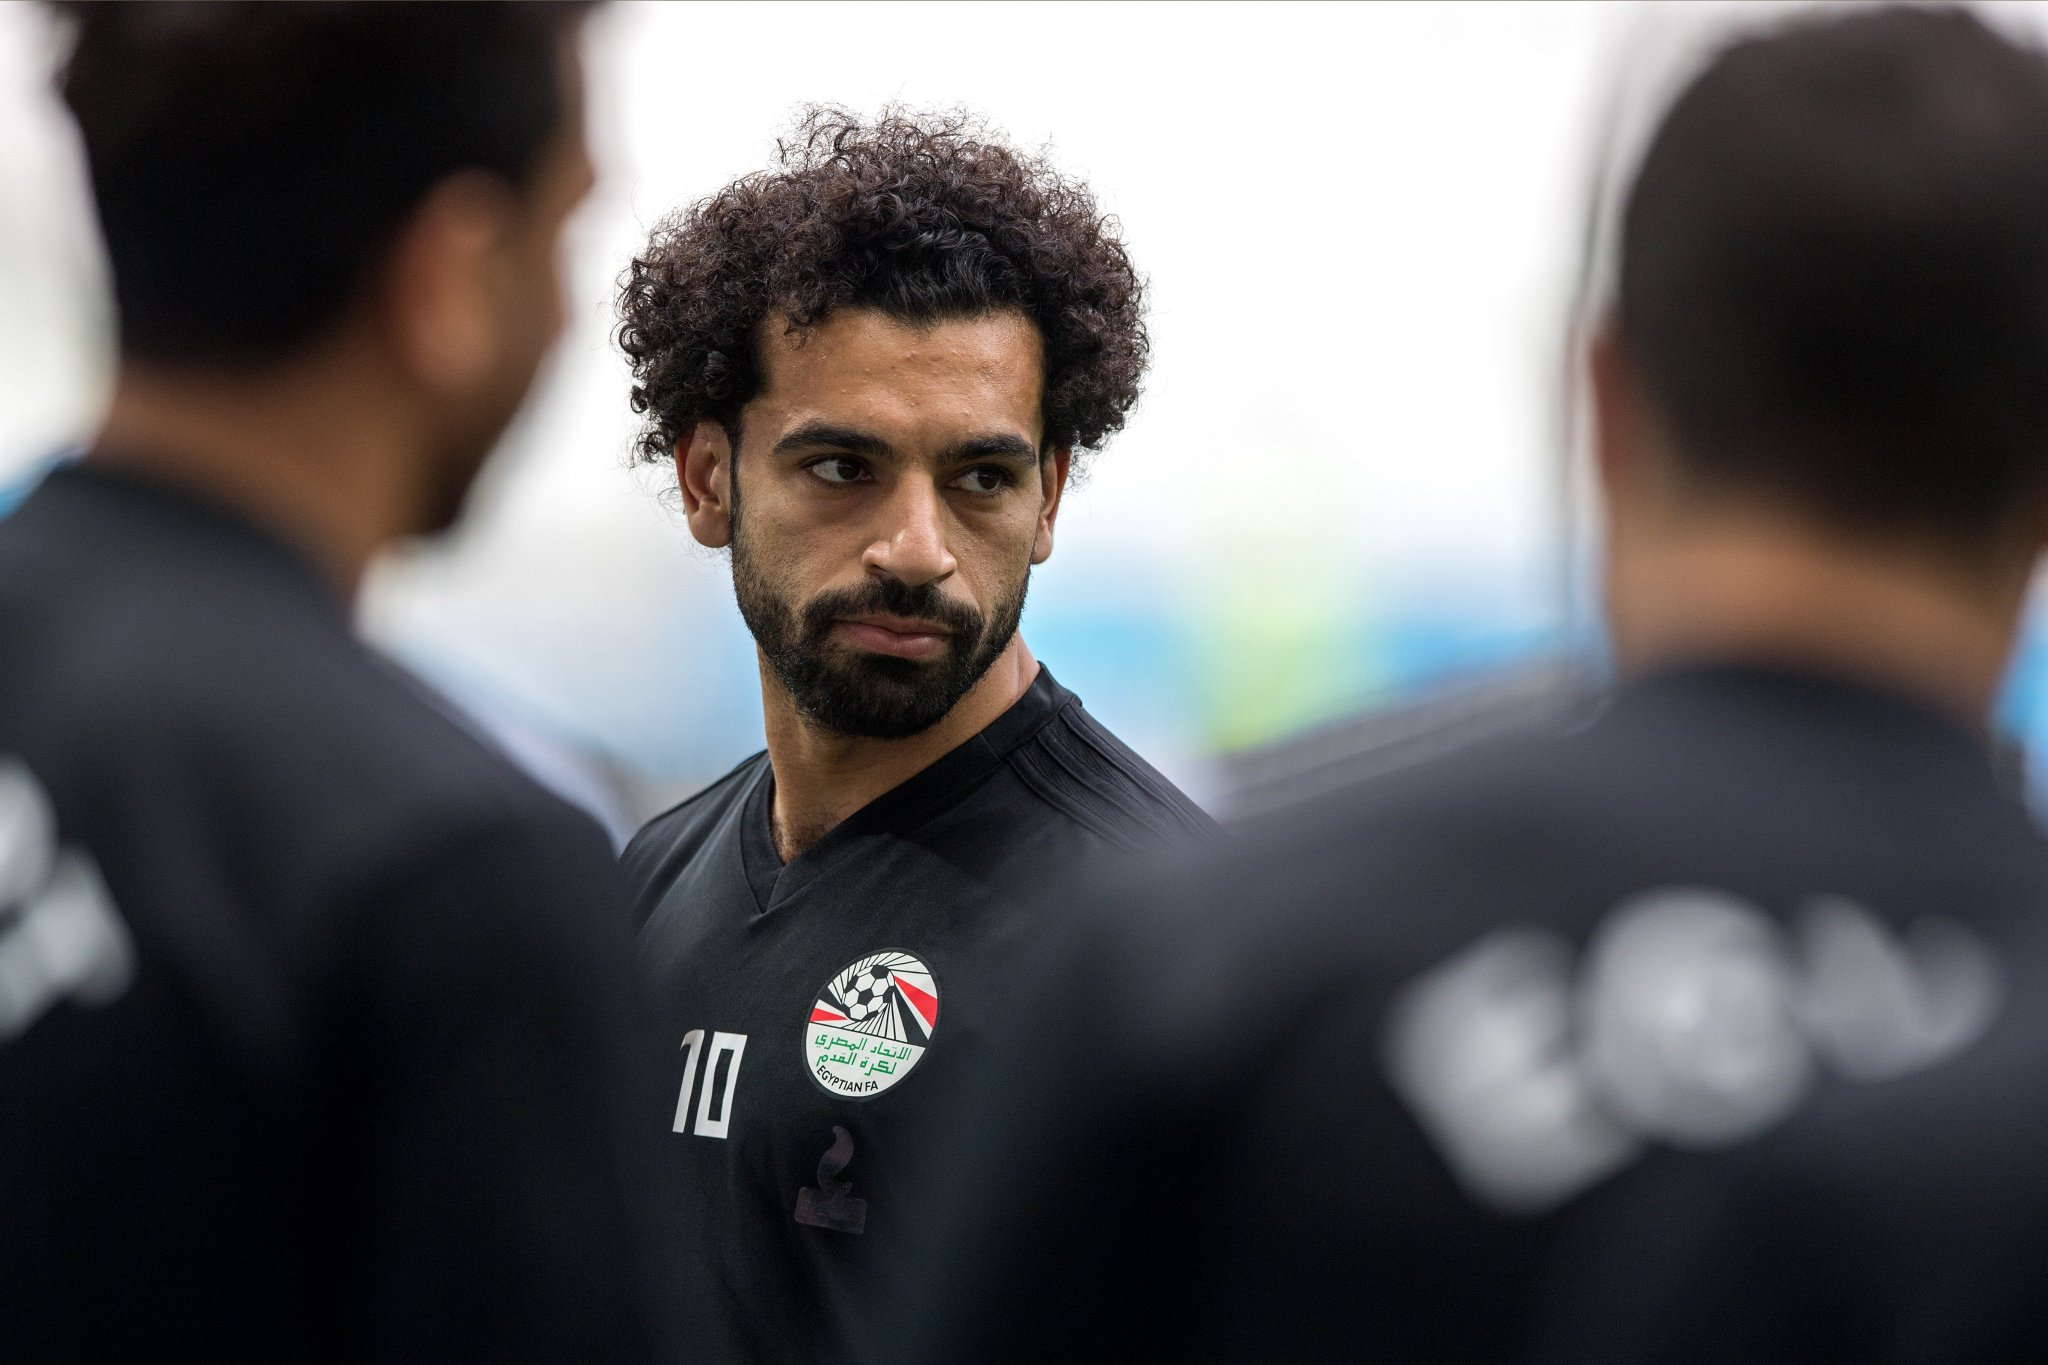 ������ @MoSalah is back in action today... Will he add to his World Cup goal tally? https://t.co/aoH2jX6cJP